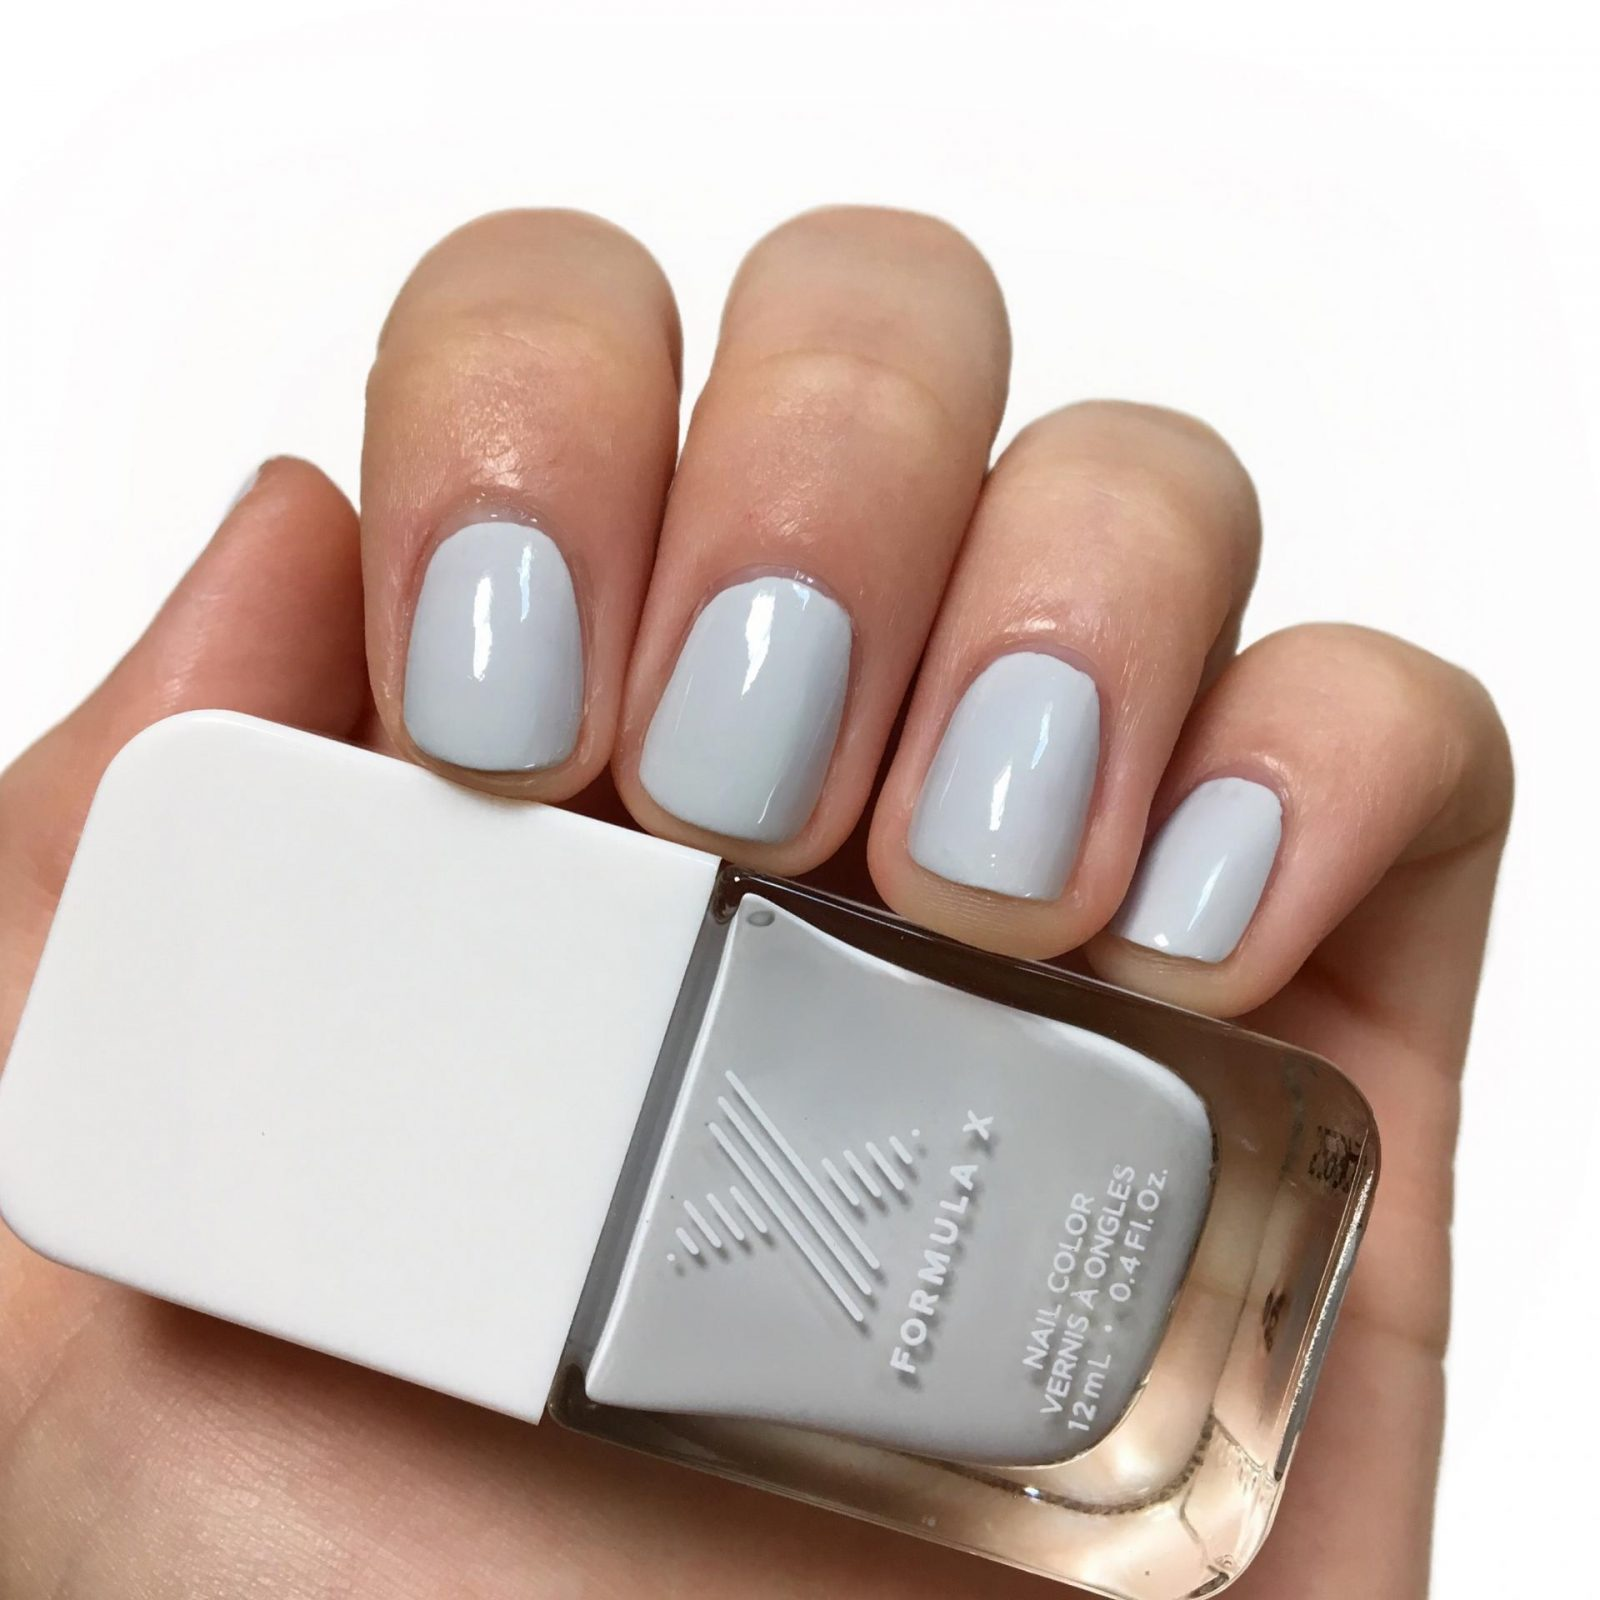 Sephora Formula X Nail Polish Delightful Swatch | Bolt Blogs